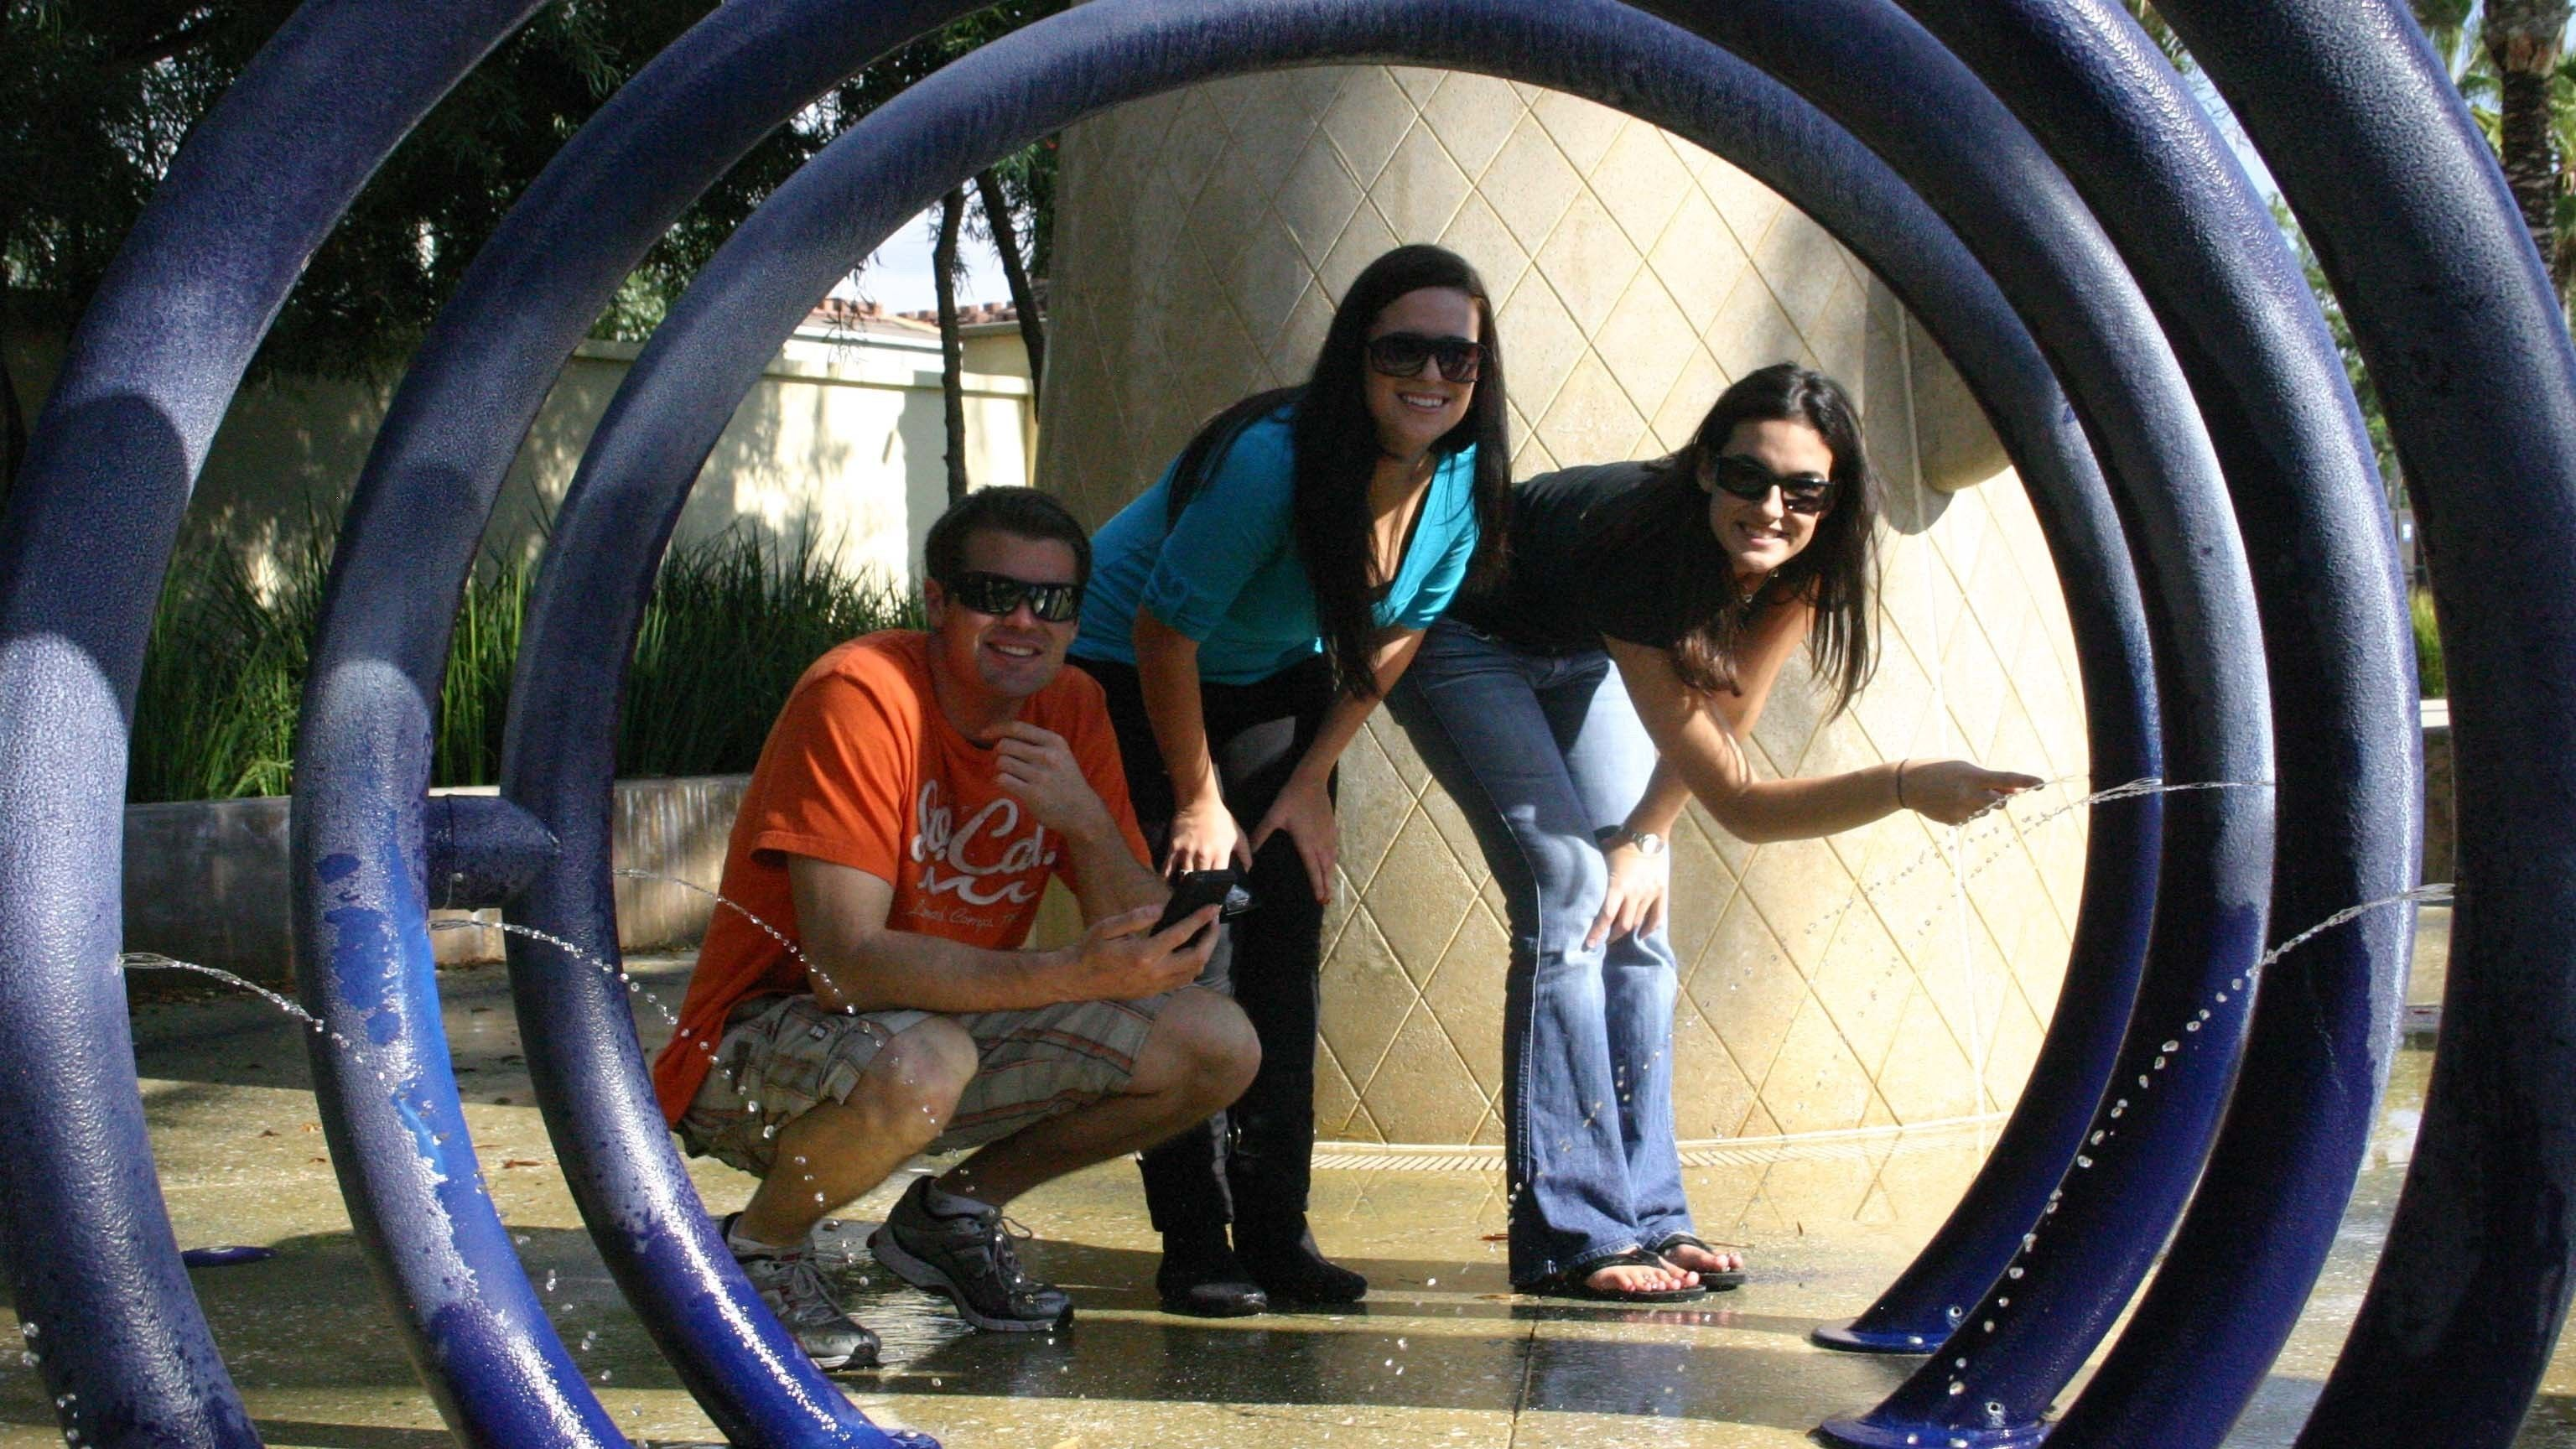 Trio of young adults framed by circular water display during a scavenger hunt